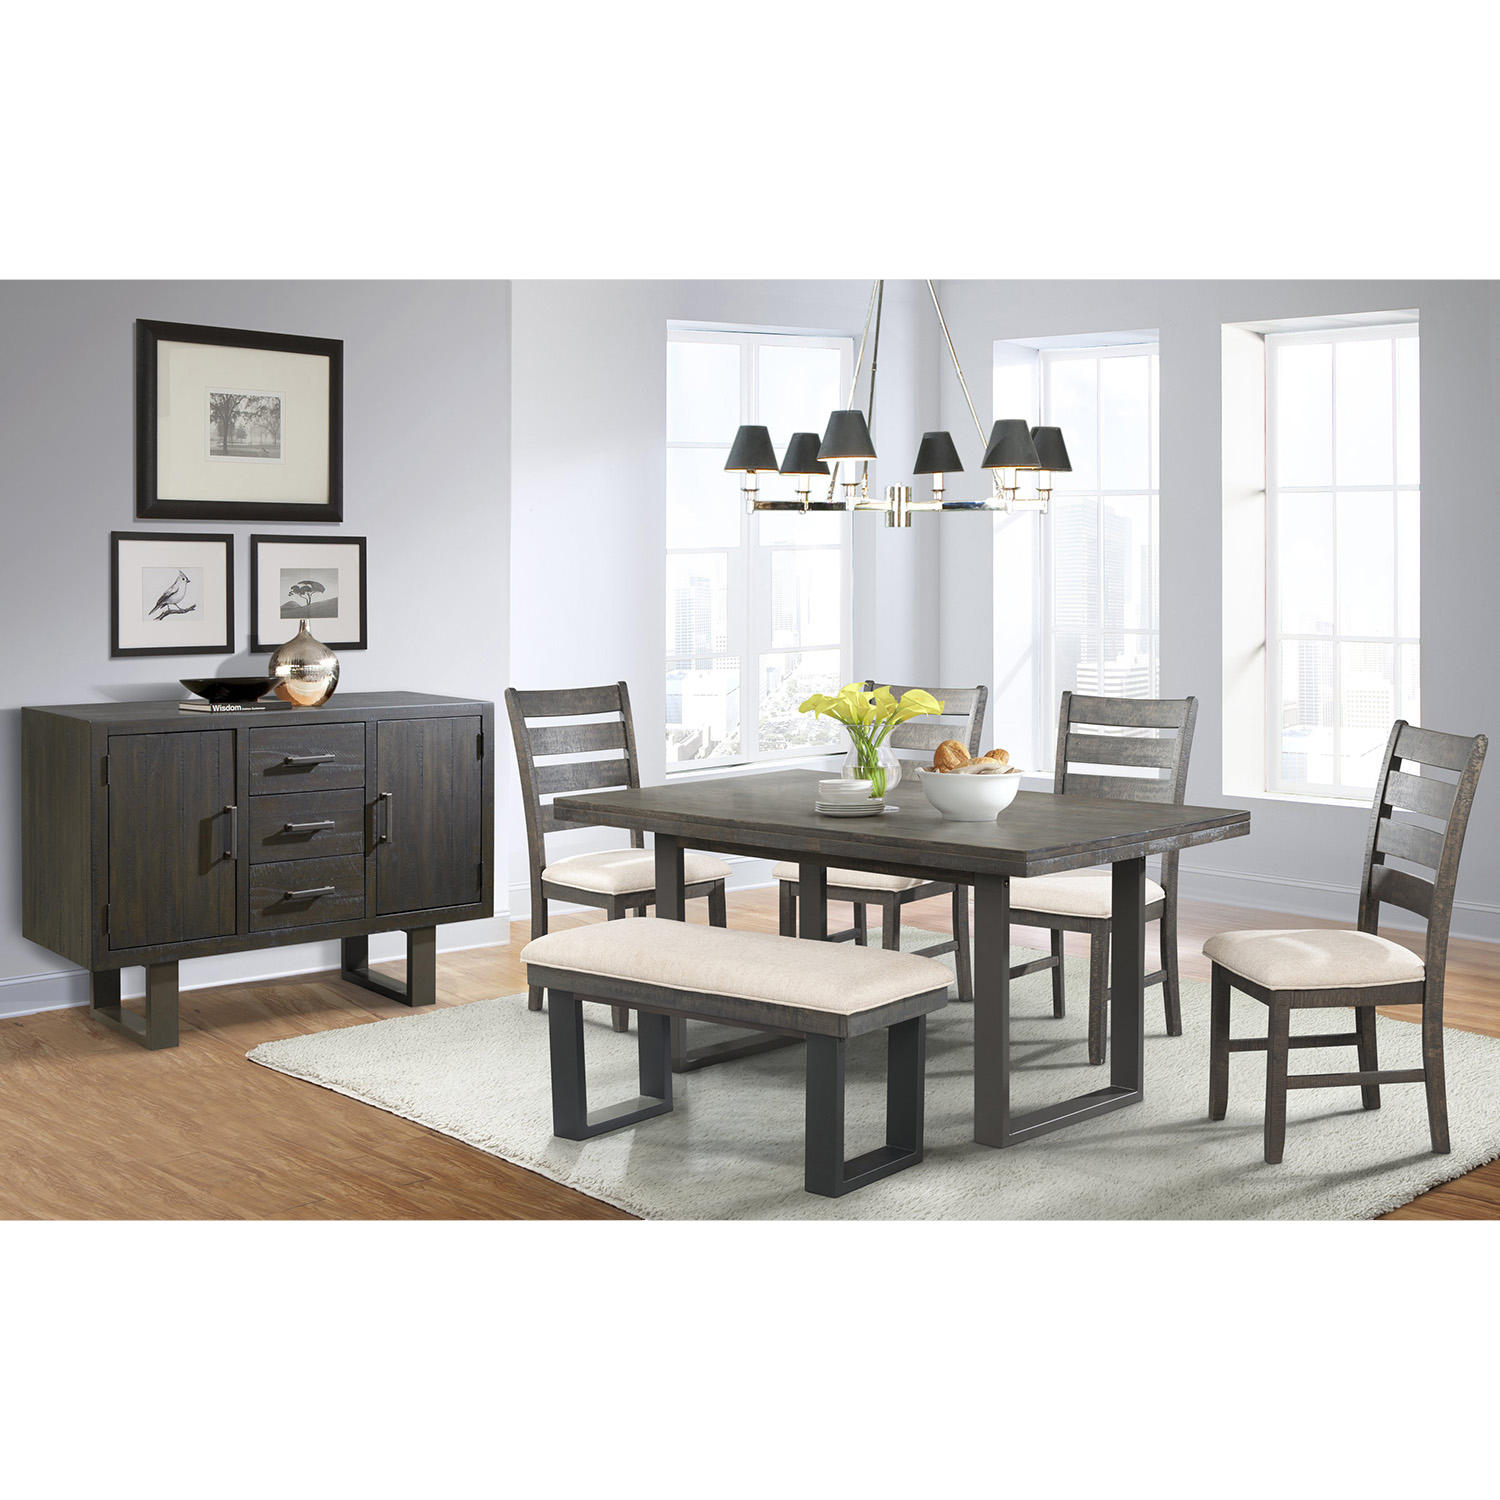 Sullivan 7-Piece Dining Table, Side Chairs, Bench and Server  Set